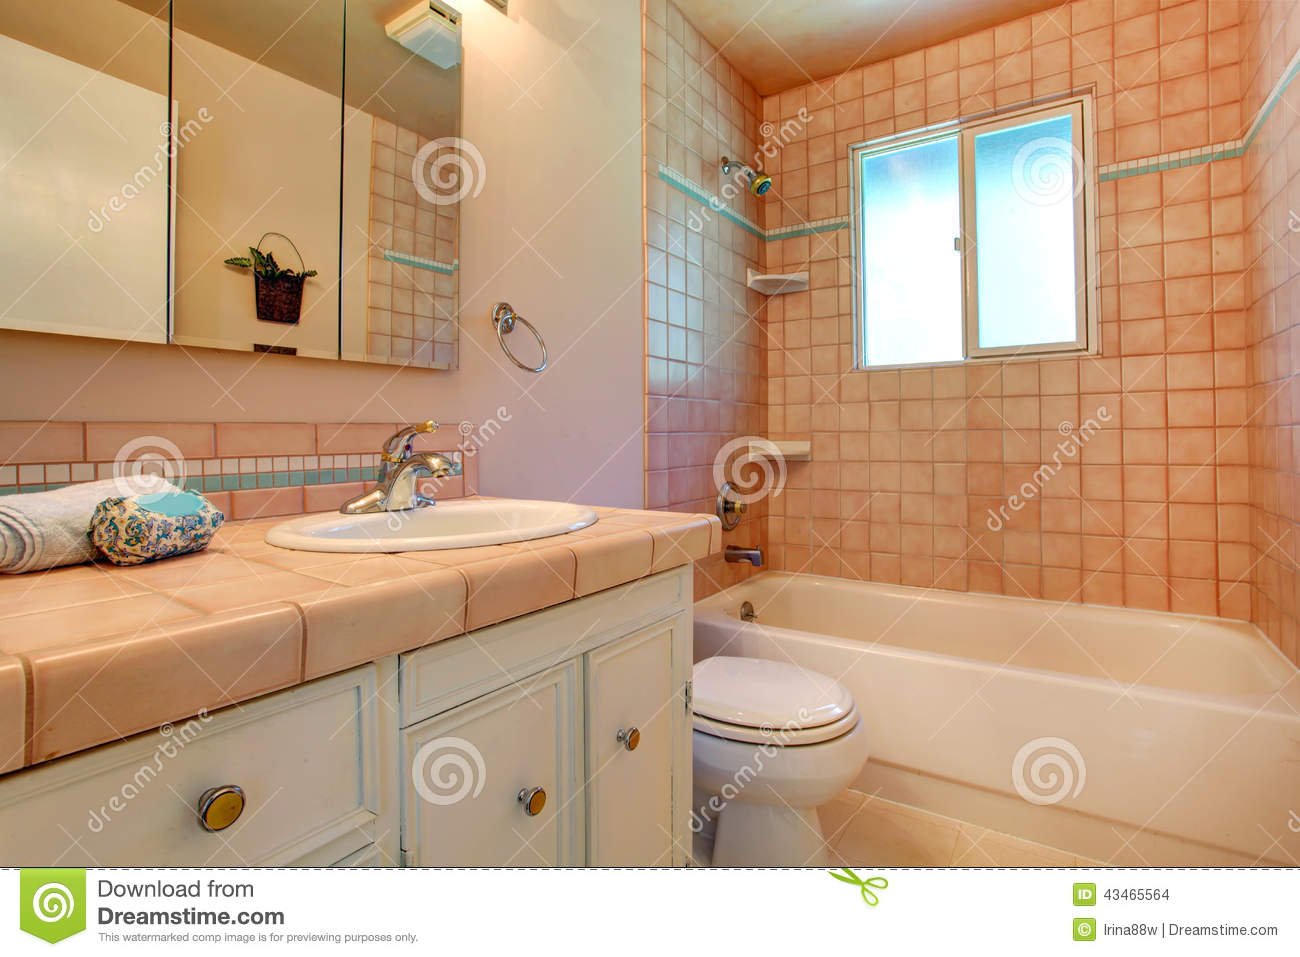 Warm bathroom interior in light peach stock photo image for Warm bathroom